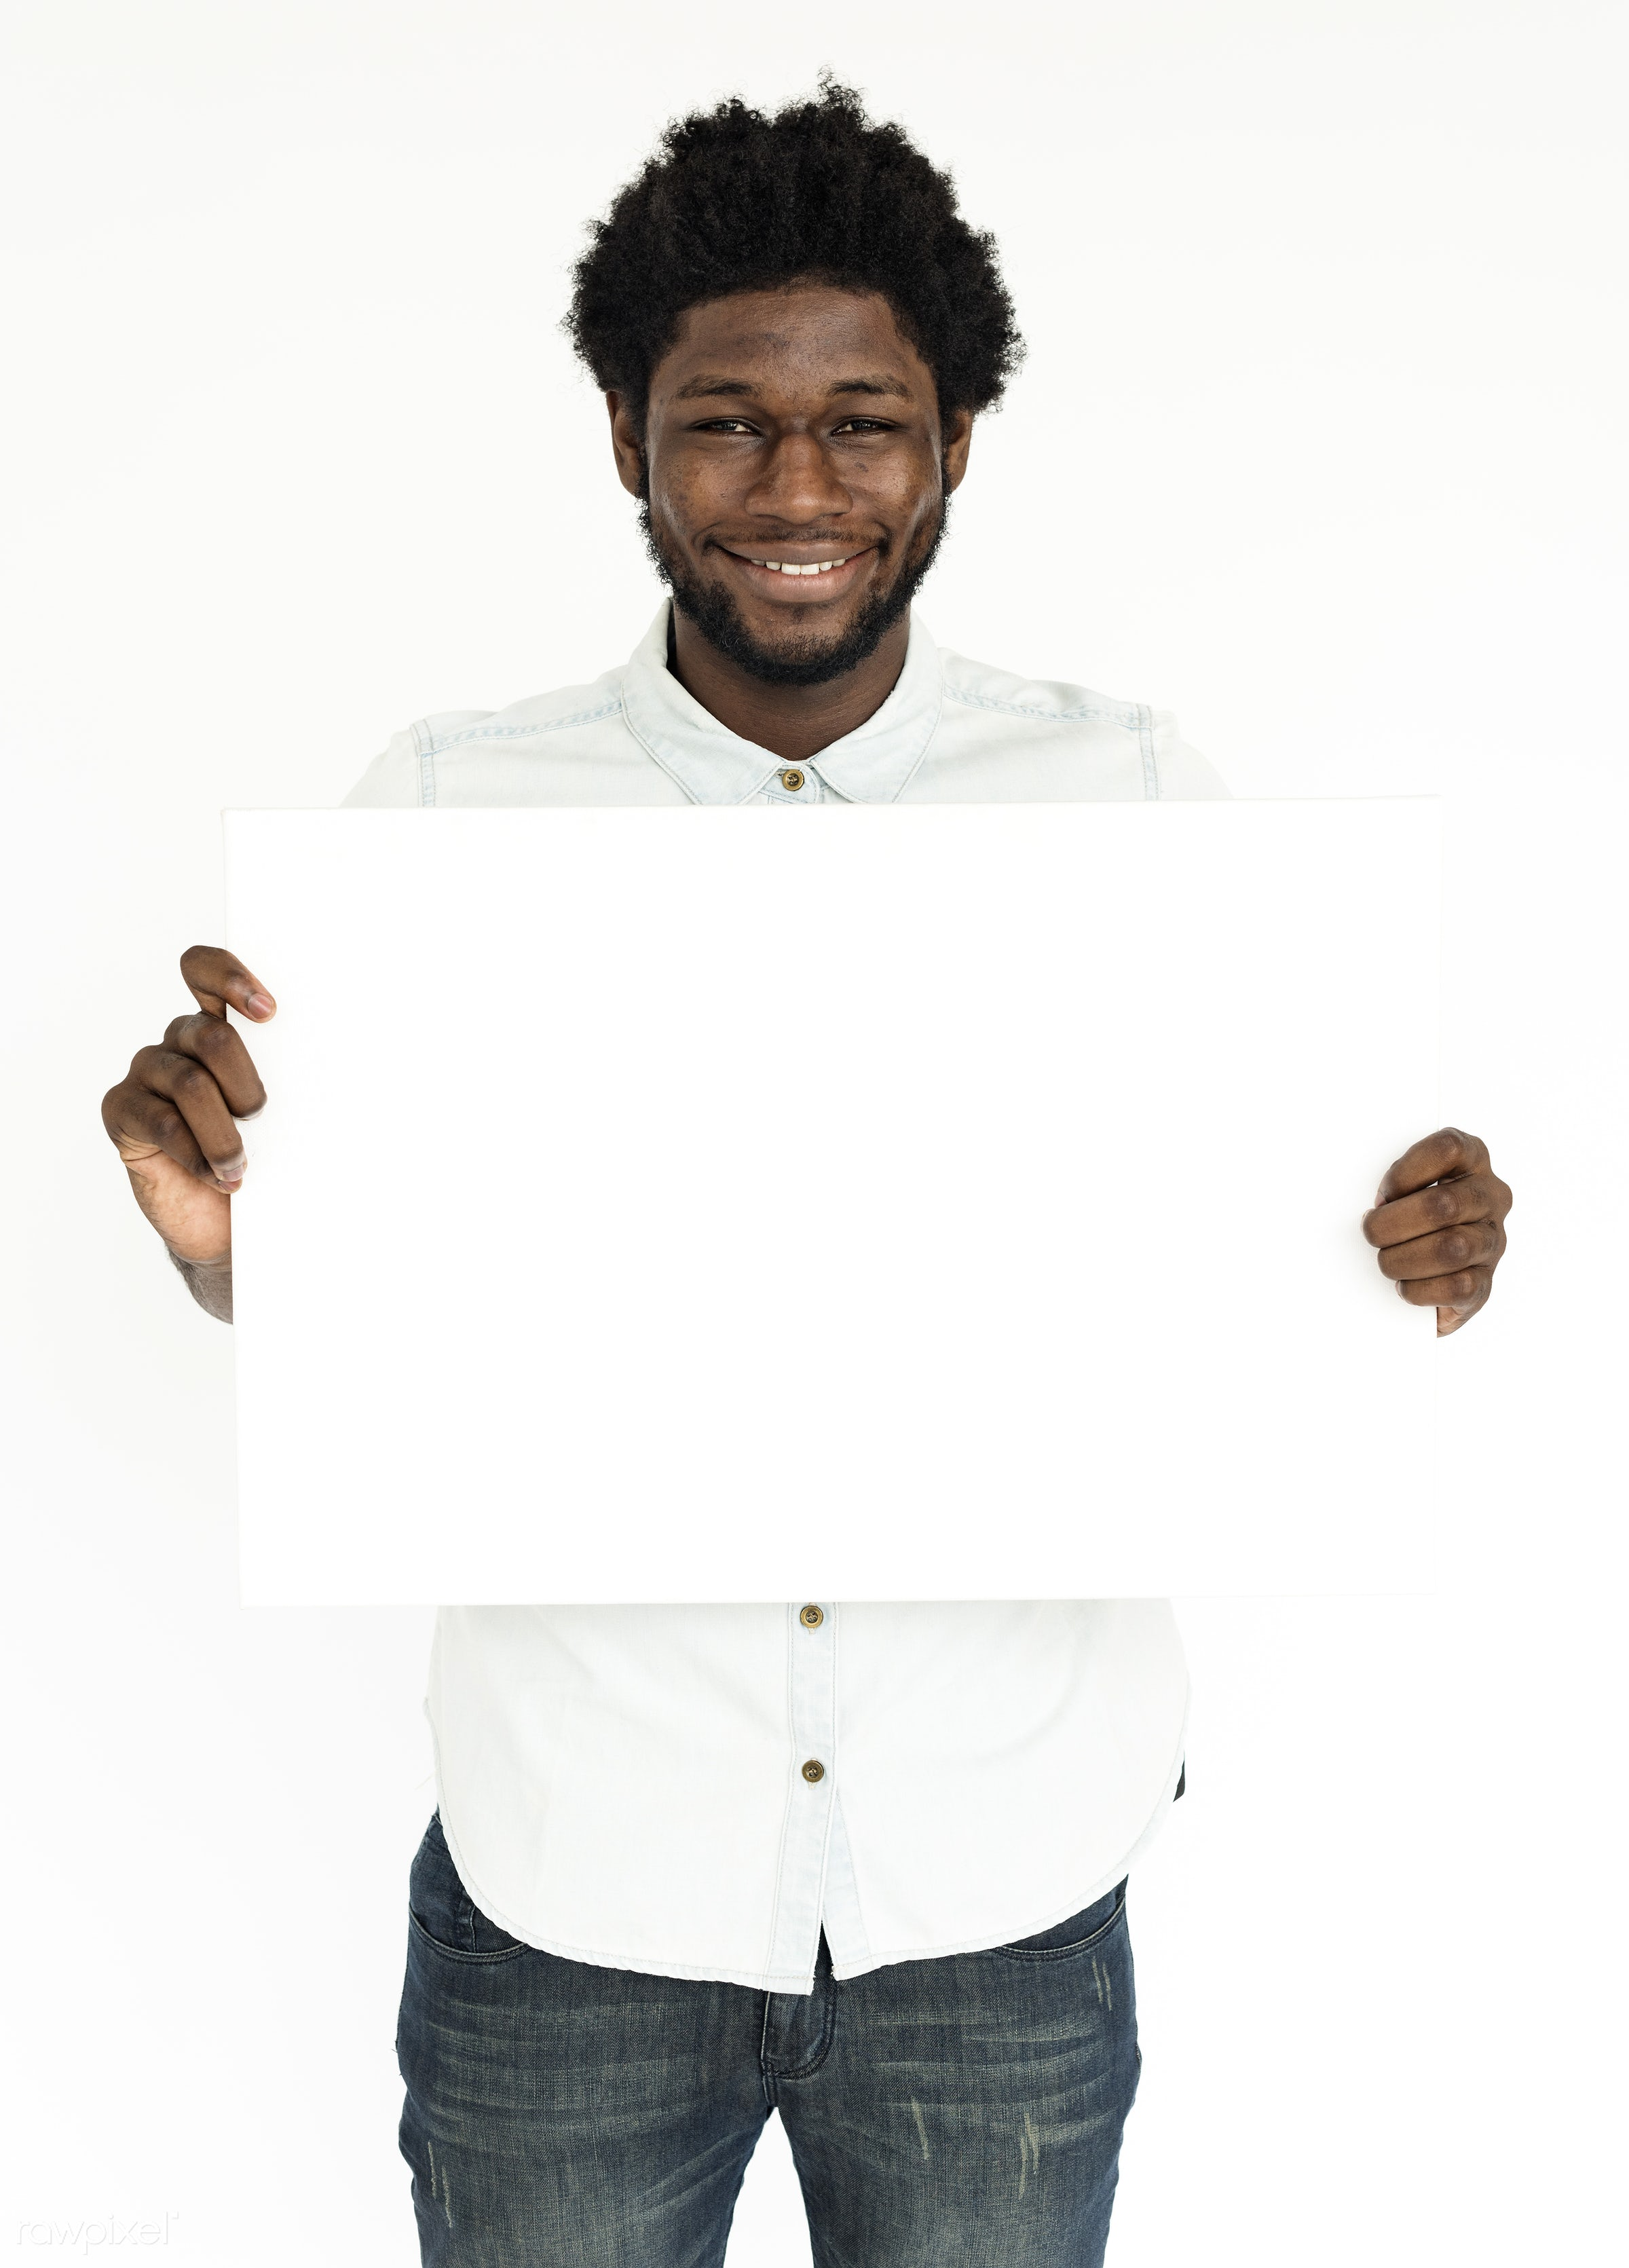 studio, expression, person, copy space, paper, isolated on white, advertising, casual, empty, showing, man, american descent...